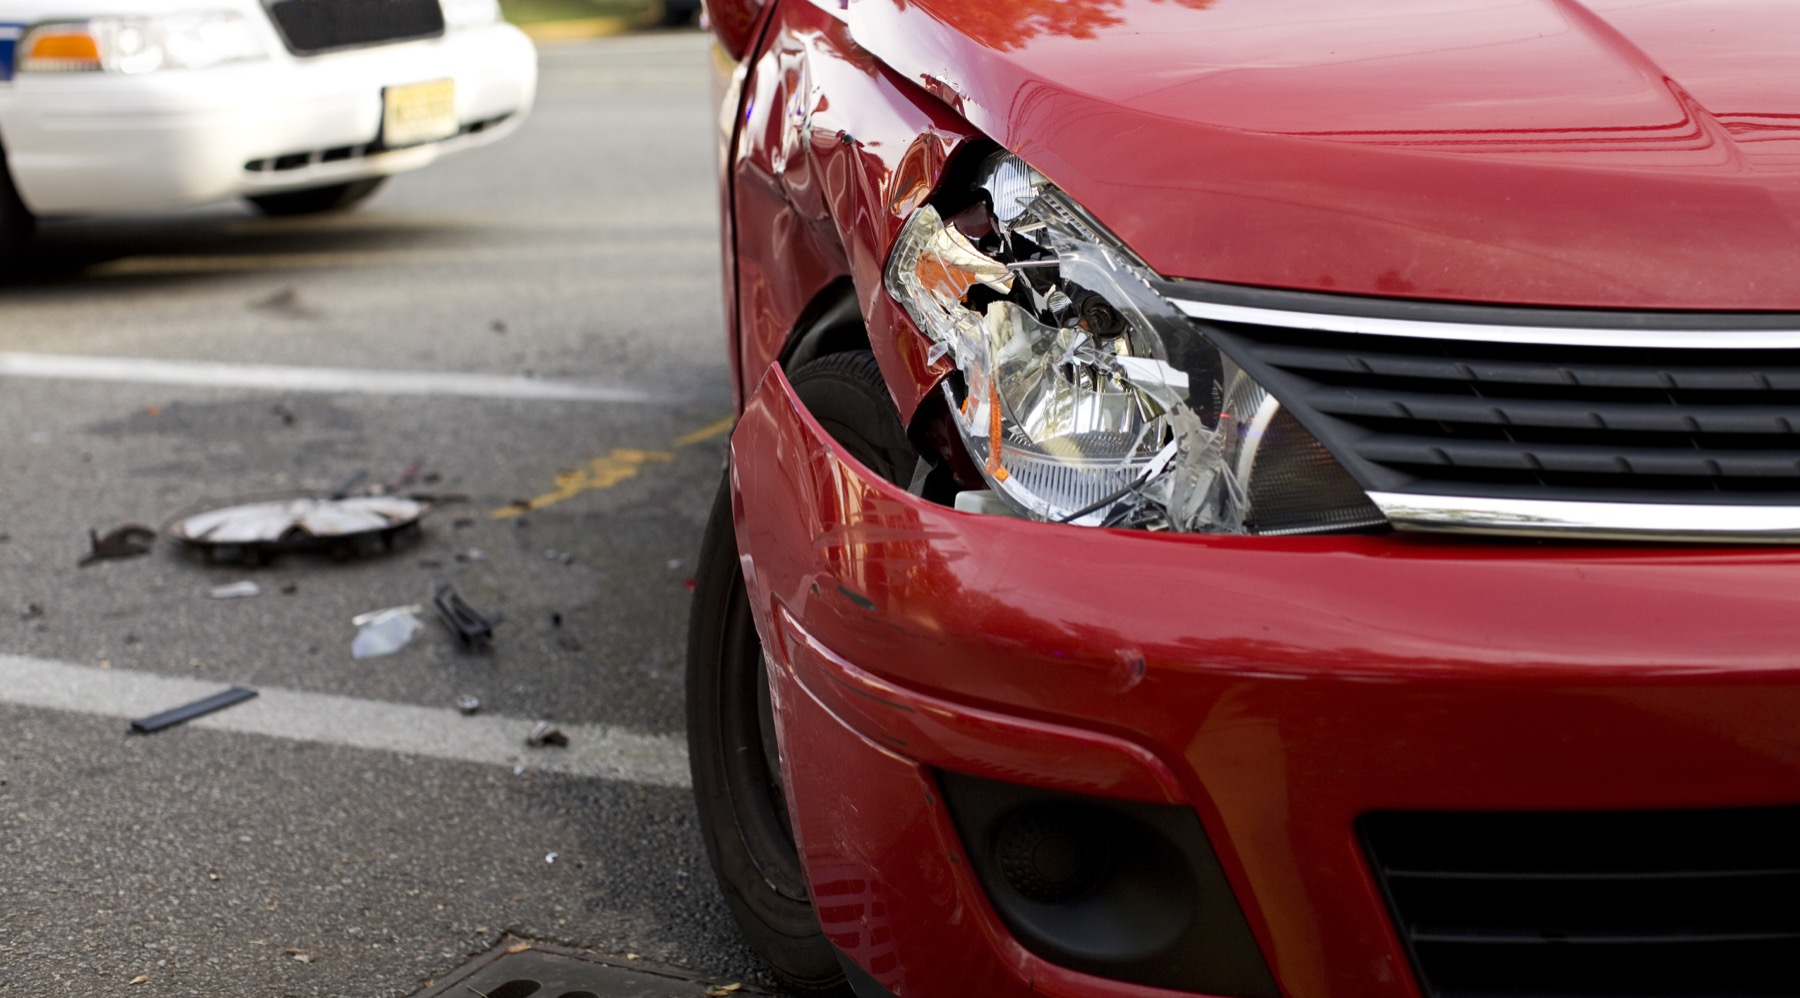 Who is Going to Fix My Car After A Car Accident?